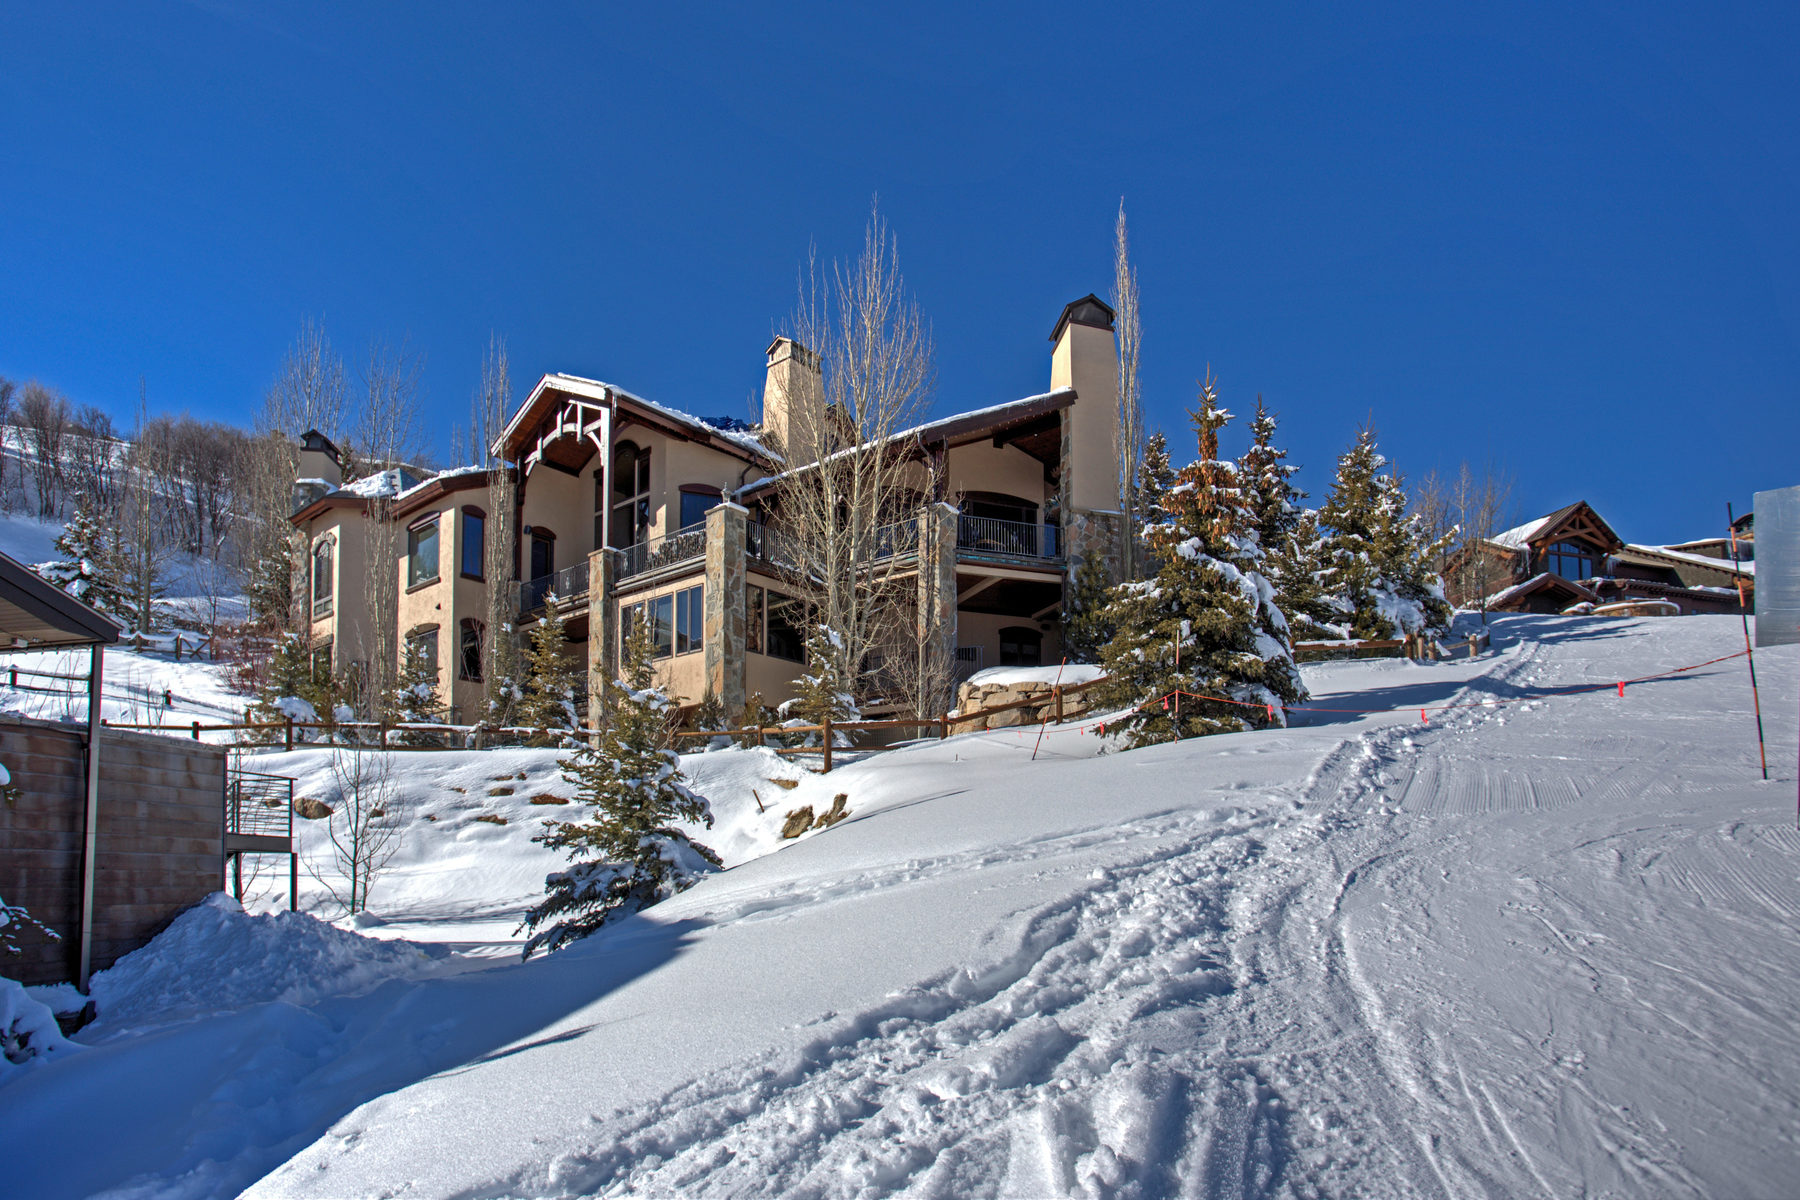 Casa Unifamiliar por un Venta en Casa Cielo, Above the Clouds in Deer Crest 3300 W Deer Crest Estates Dr Park City, Utah, 84060 Estados Unidos